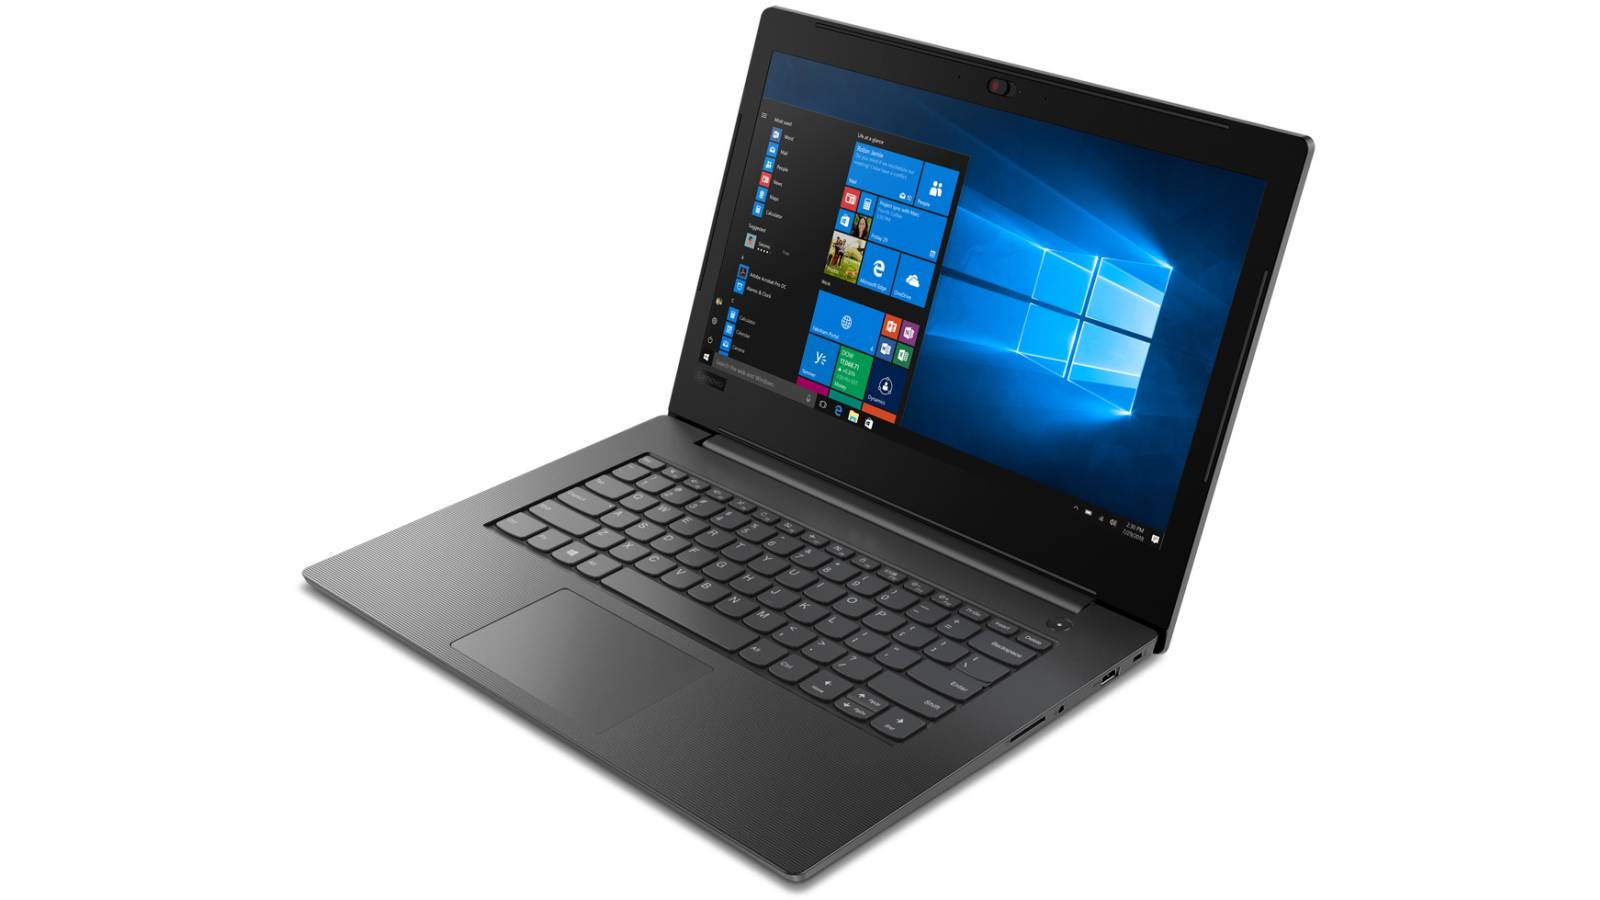 "NOTEBOOK LENOVO V130-14IGM INTEL N4000/4G/500G/14"" - WIN10"